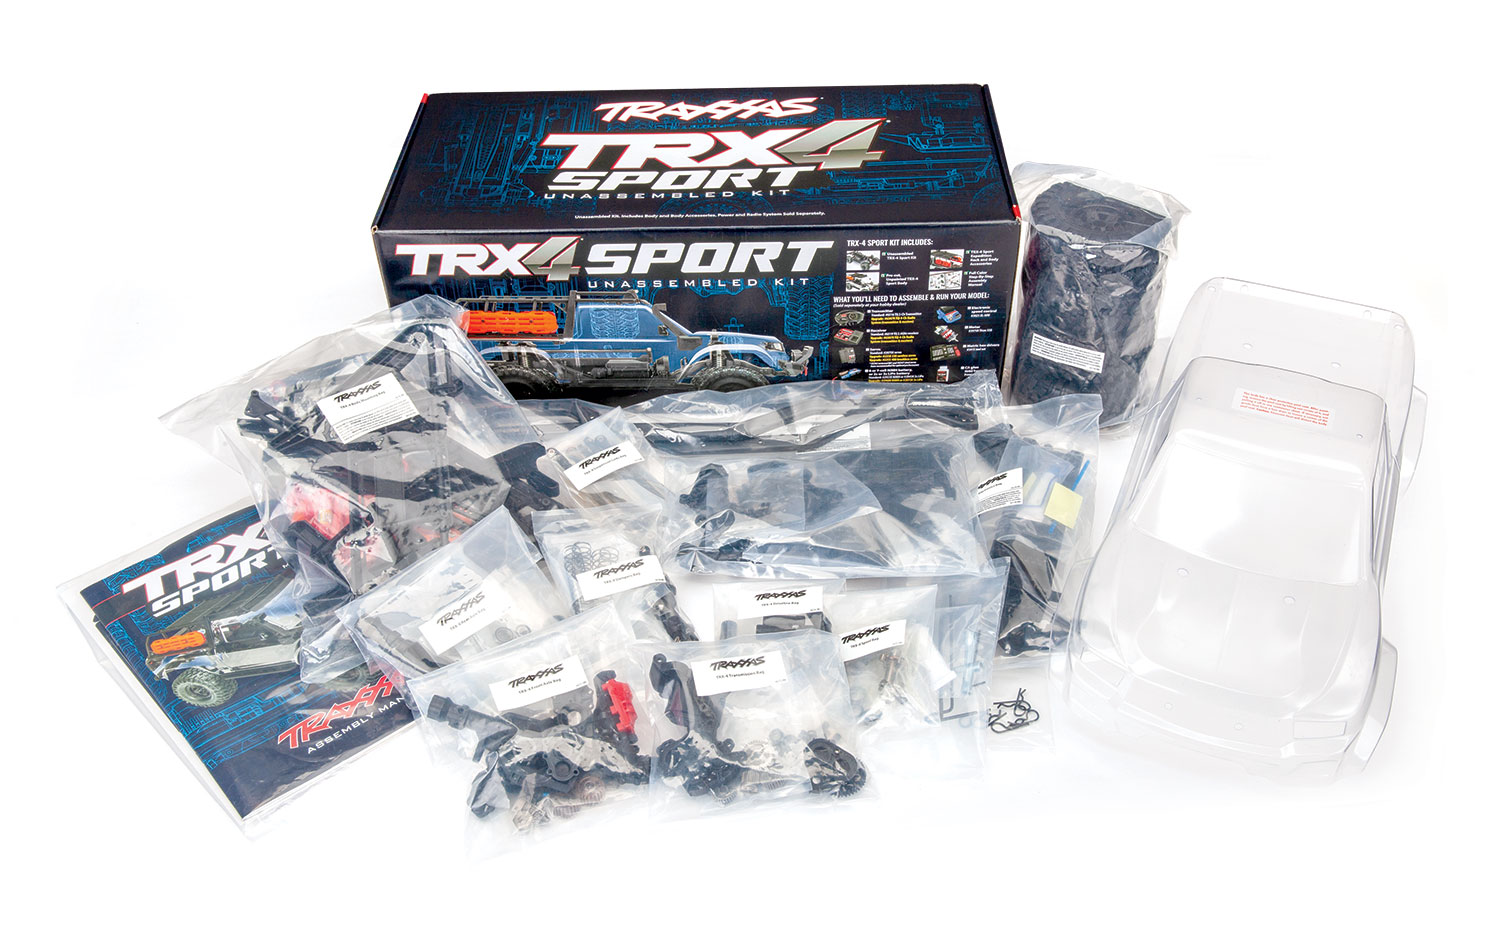 82010-4-TRX-4-Sport-Kit-contents-and-box